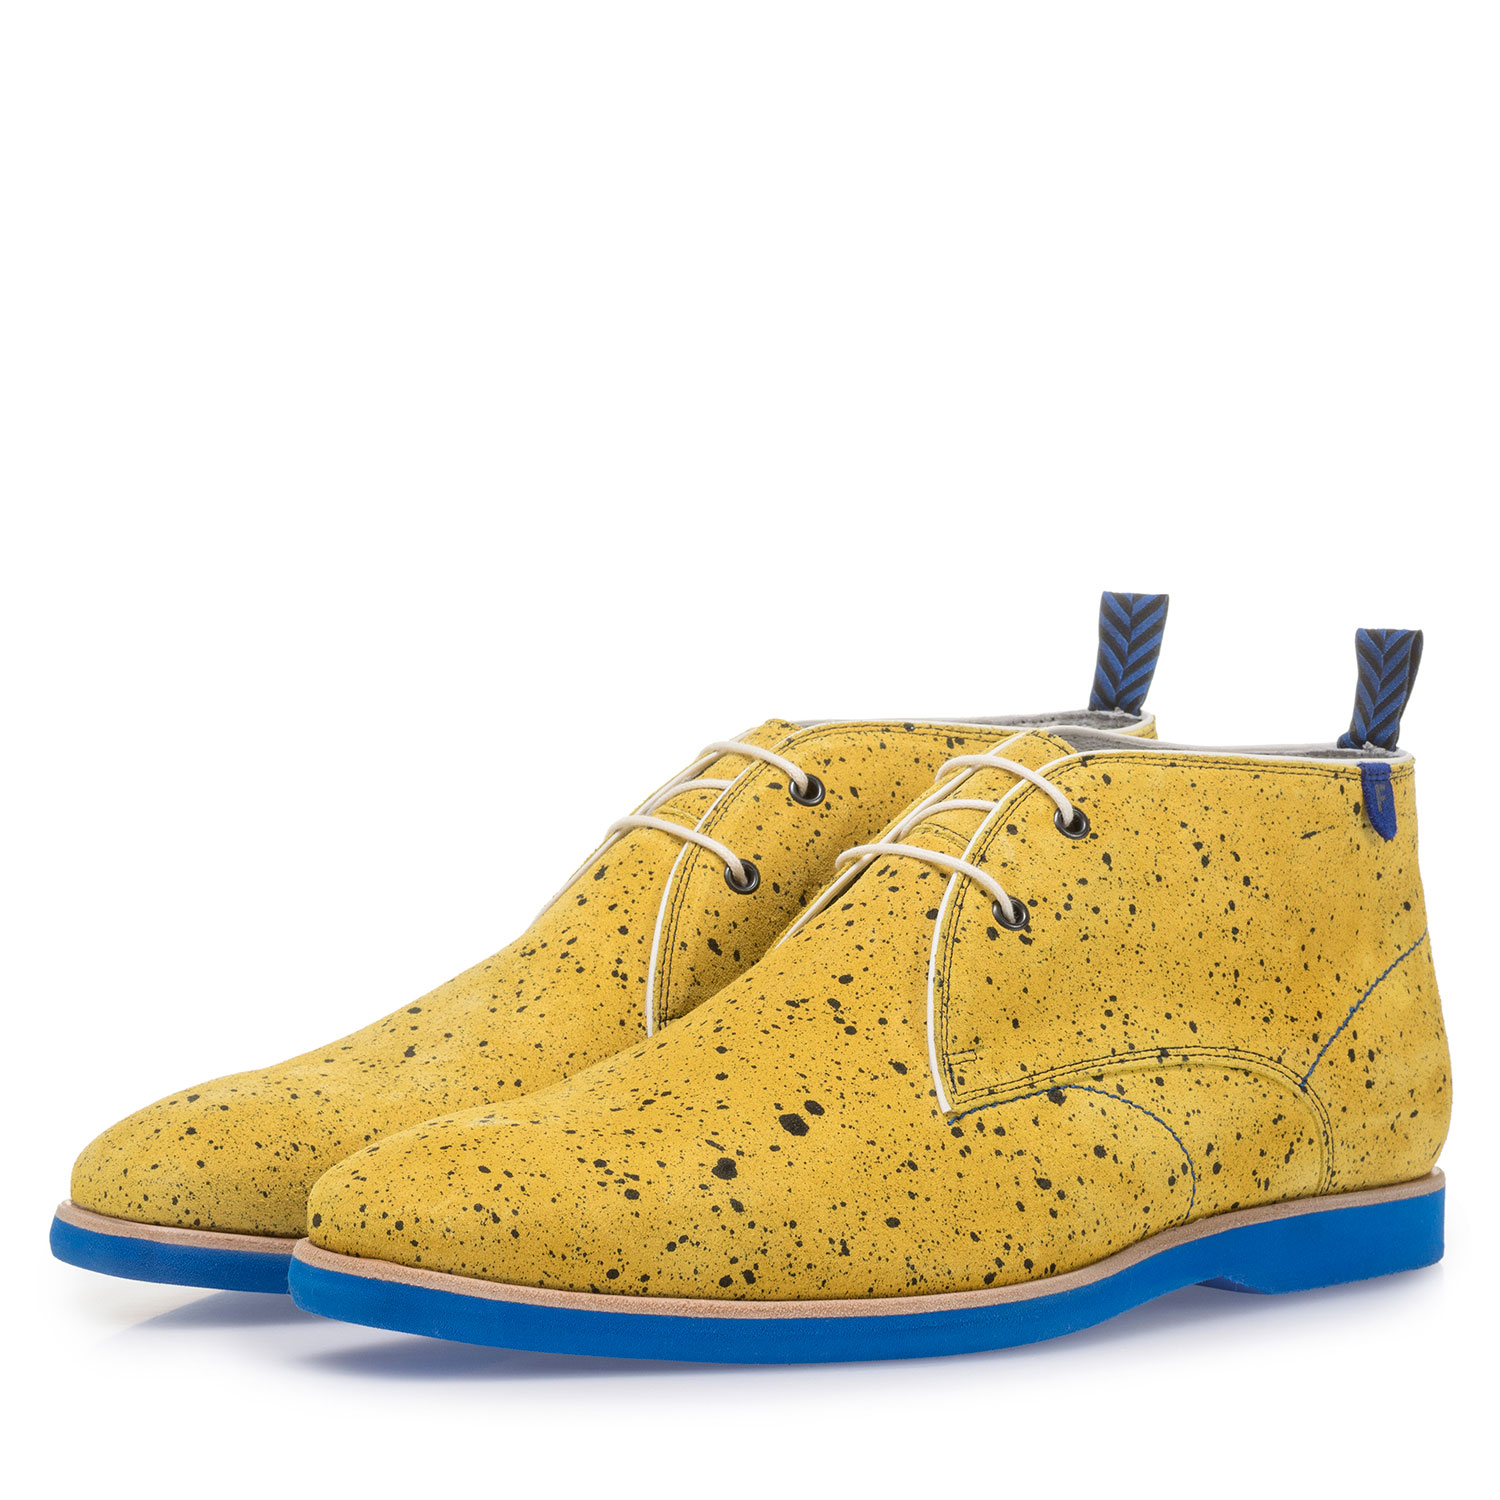 10014/16 - Yellow suede leather lace boot with print